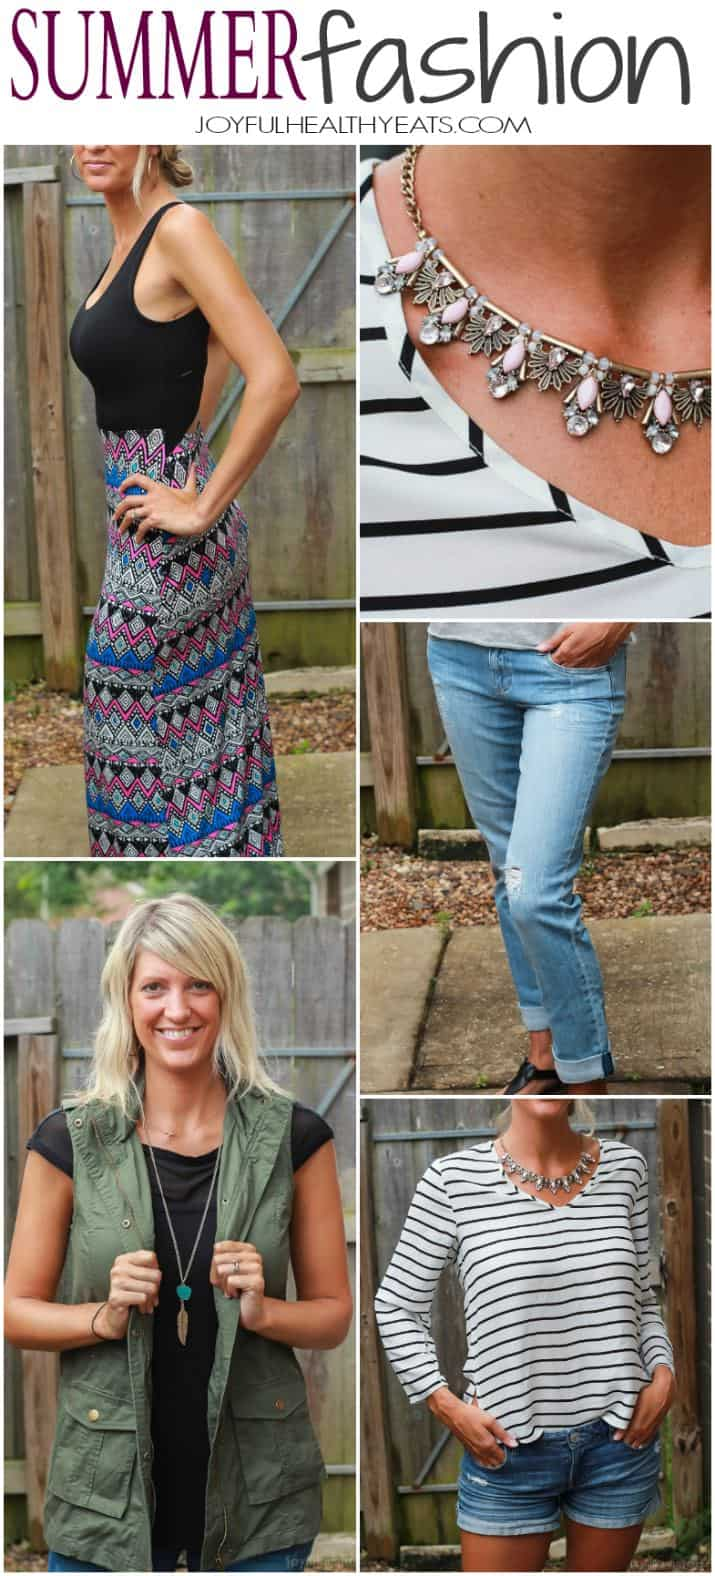 Awesome Trendy Clothes sent straight to your house! Perfect for the summer - floral gold necklaces, trendy maxi dresses, and distressed boyfriend jeans ! |joyfulhealthyeats.com #stitchfix